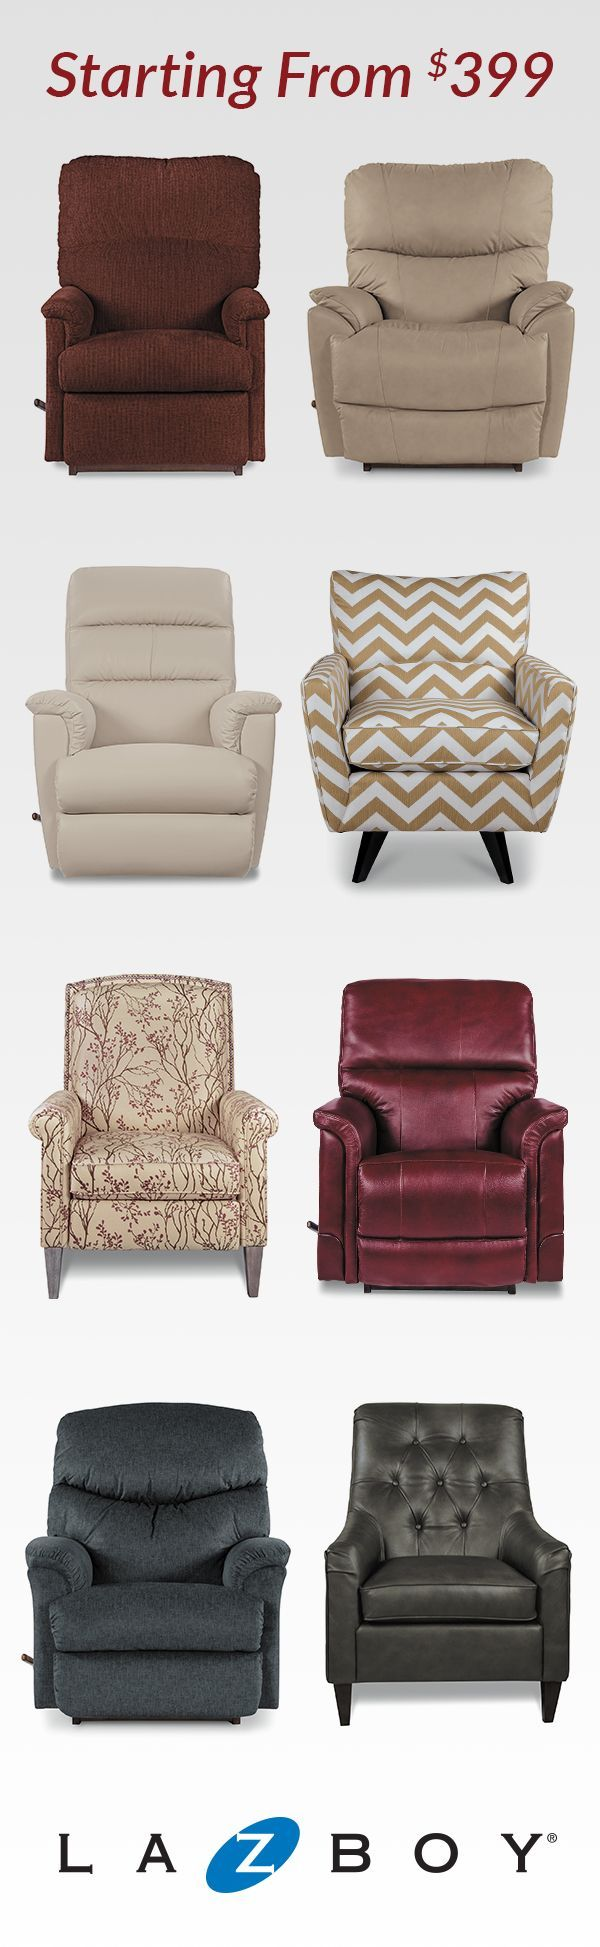 Transform Your Living Room And Bedroom With La Z Boy S Comfortable Home Furniture Shop For Sofas Couches Recliners Chairs Tables Mattress In A Box And Mo In 2020 La Z Boy